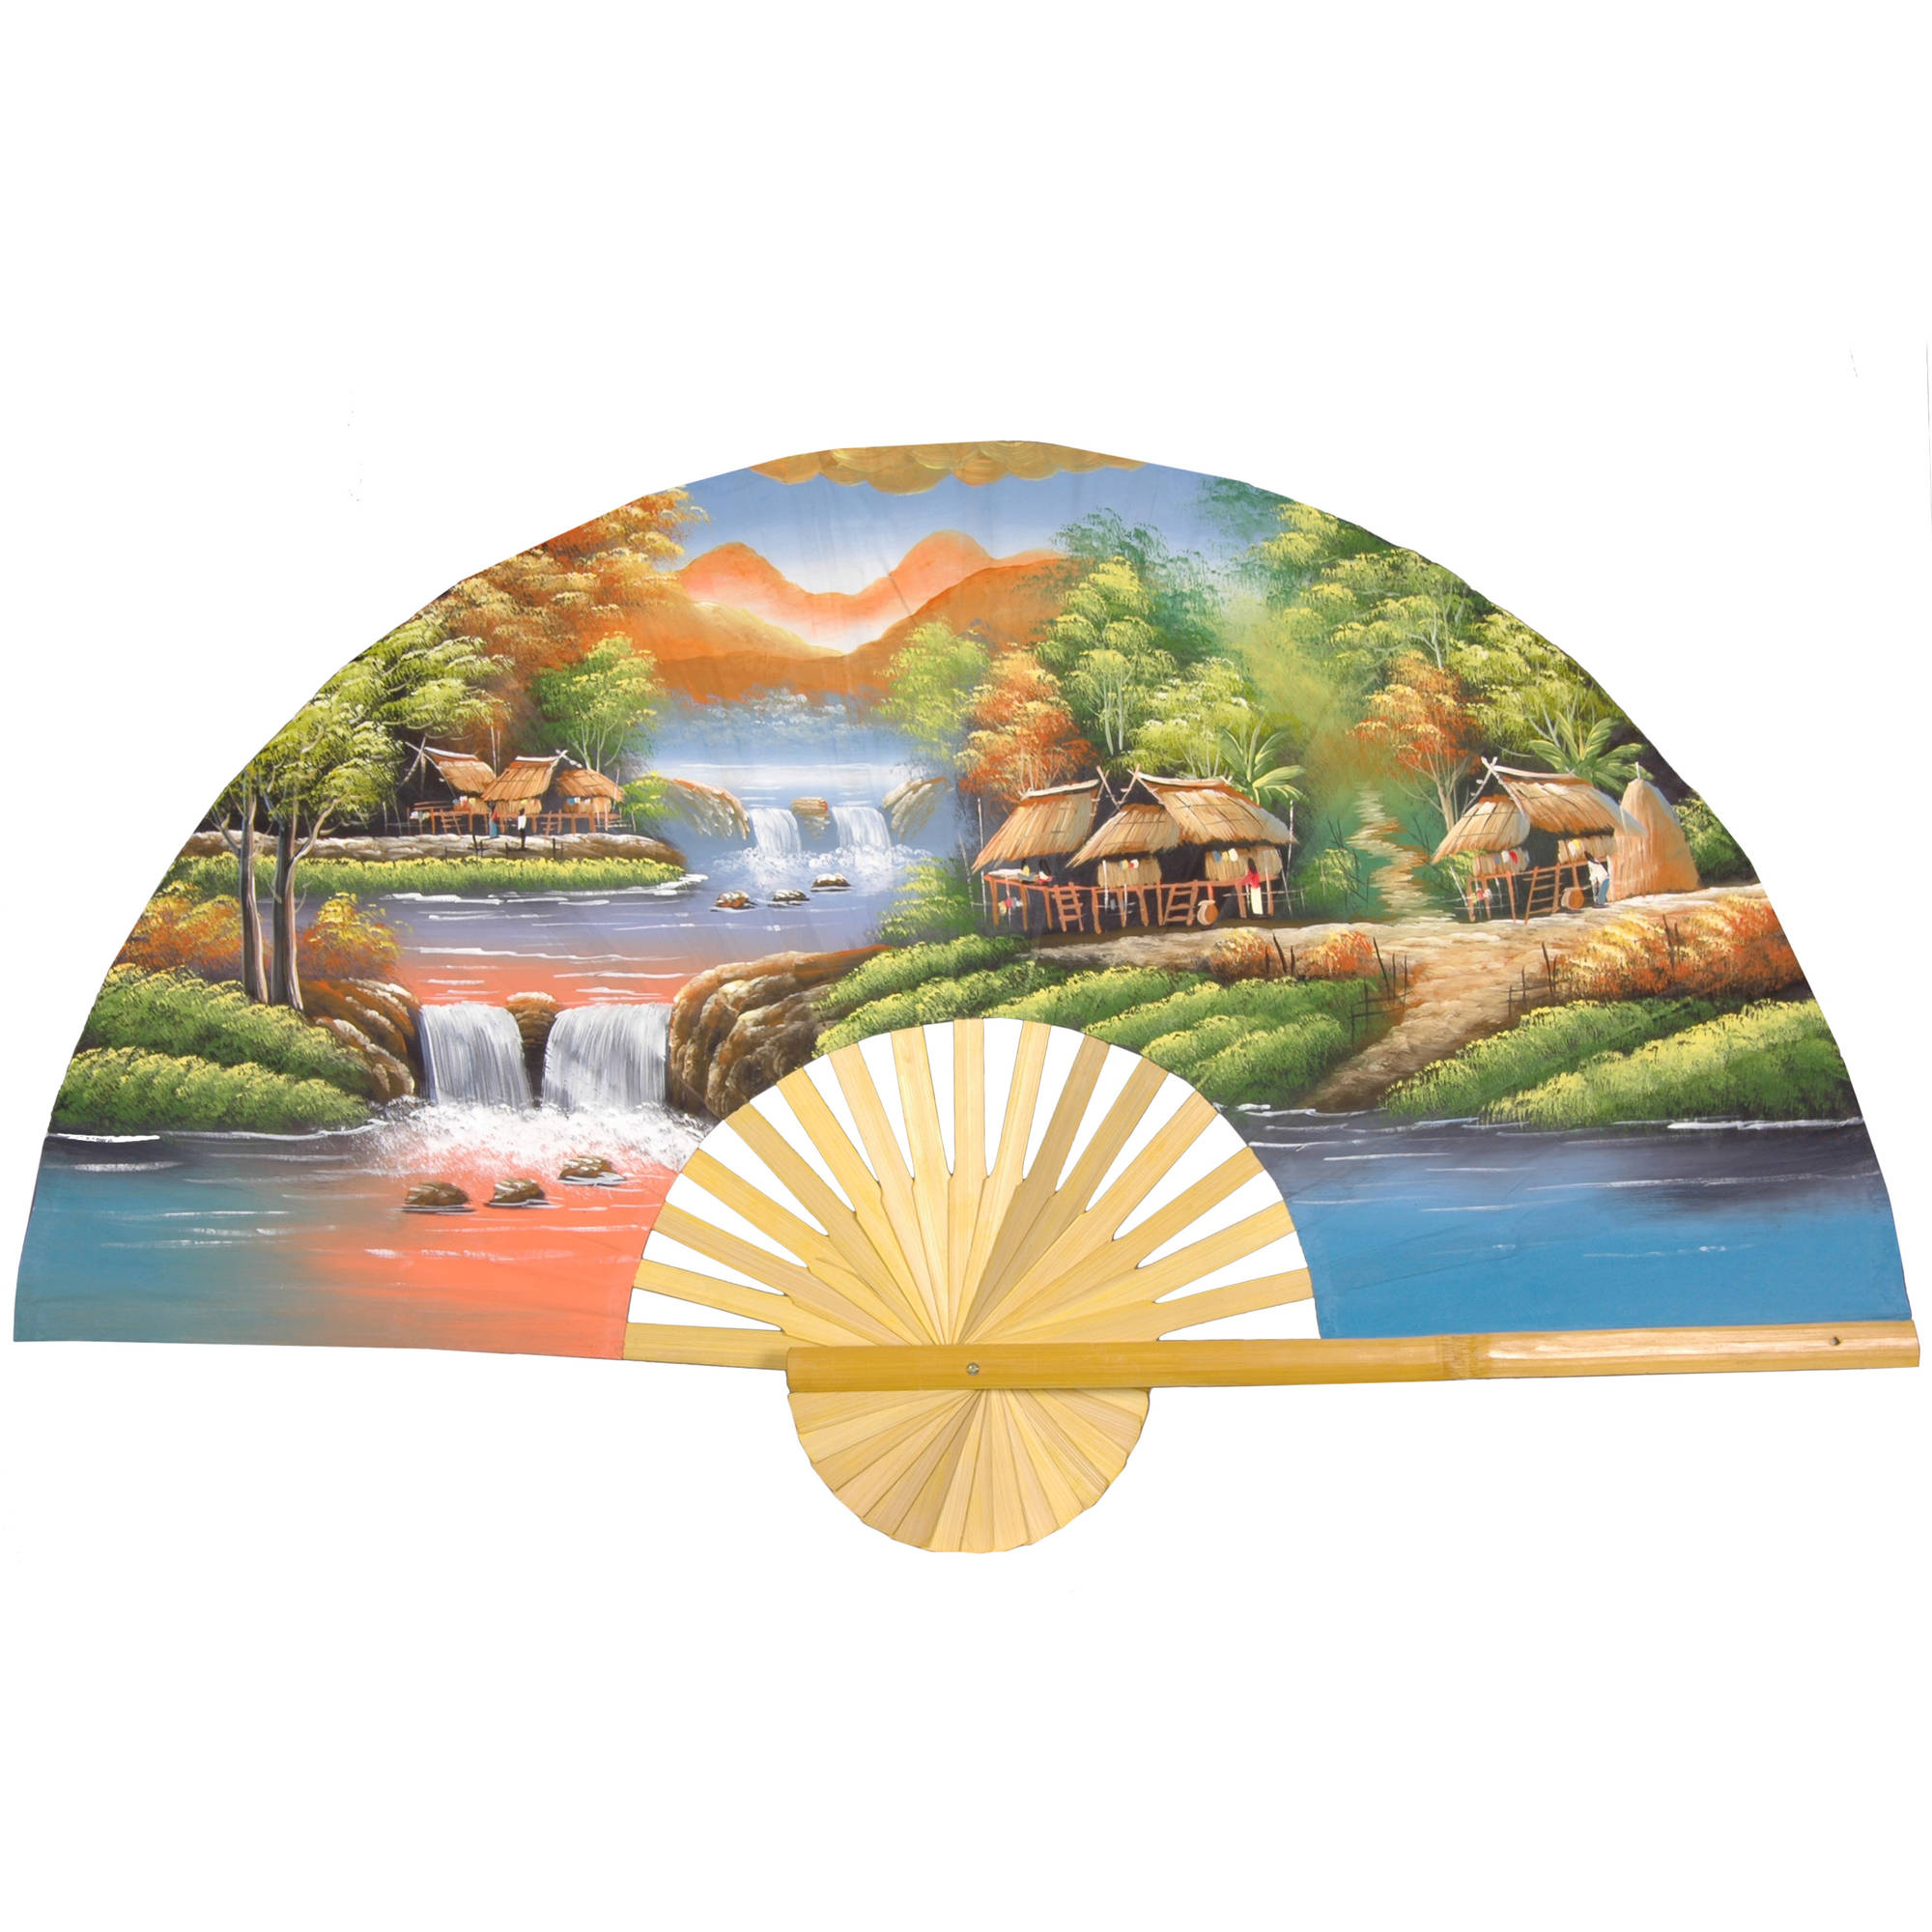 Tranquility Wall Fan